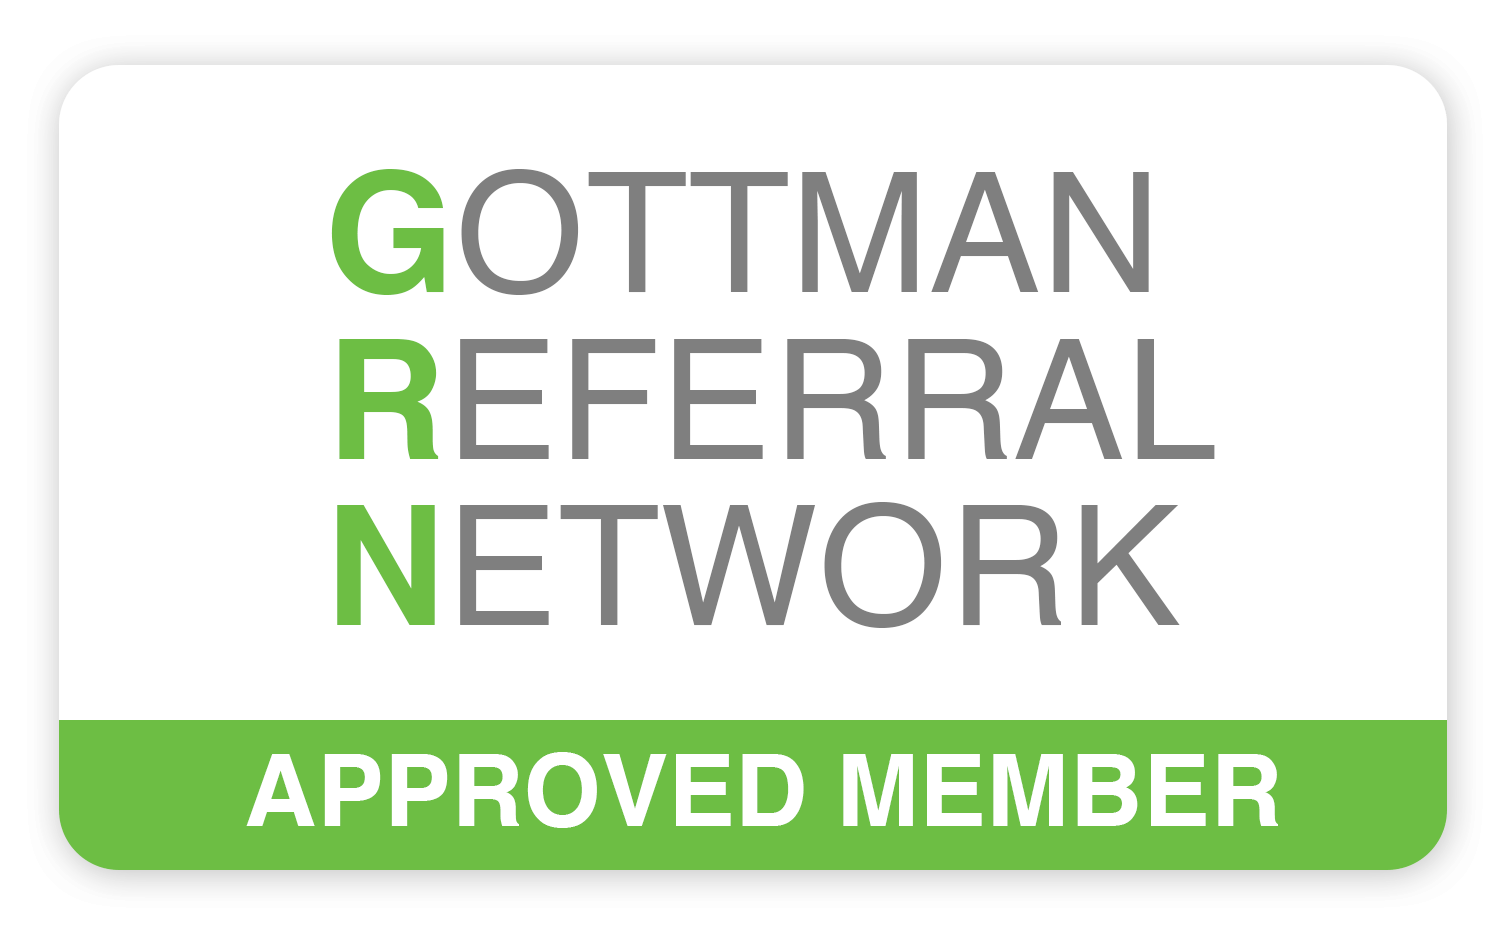 Eugene Chong's profile on the Gottman Referral Network